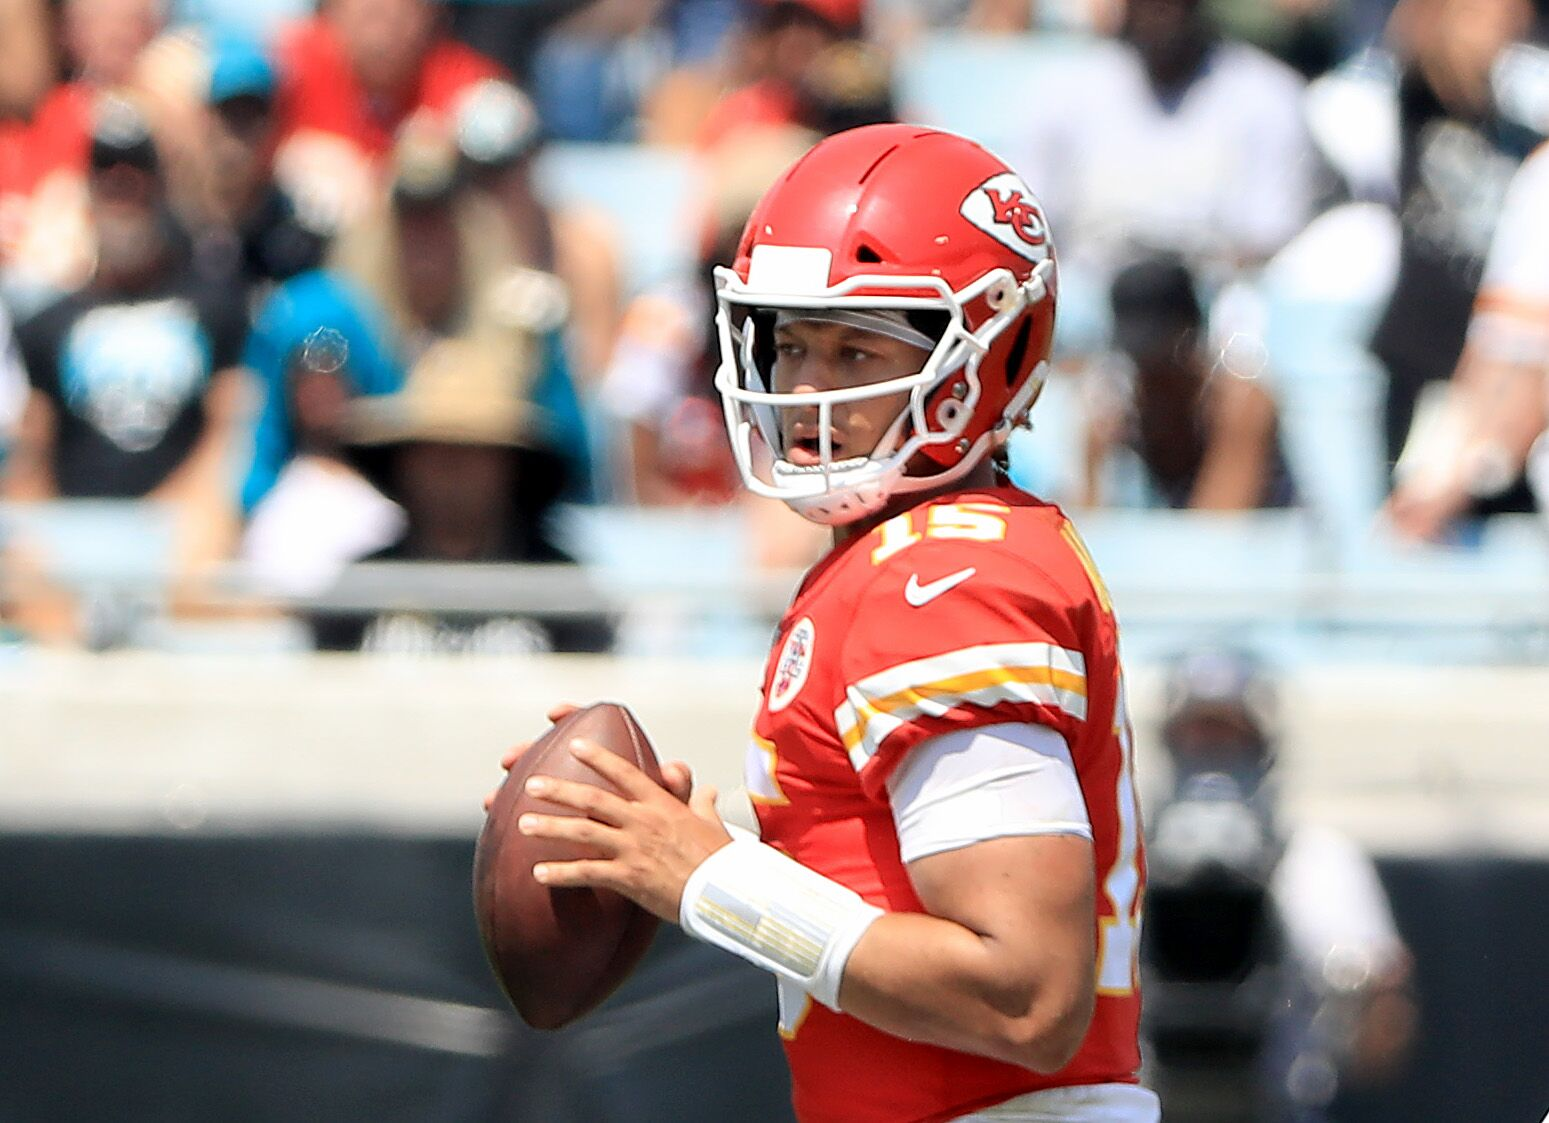 Ravens vs. Chiefs fantasy football preview: Pay up for Travis Kelce